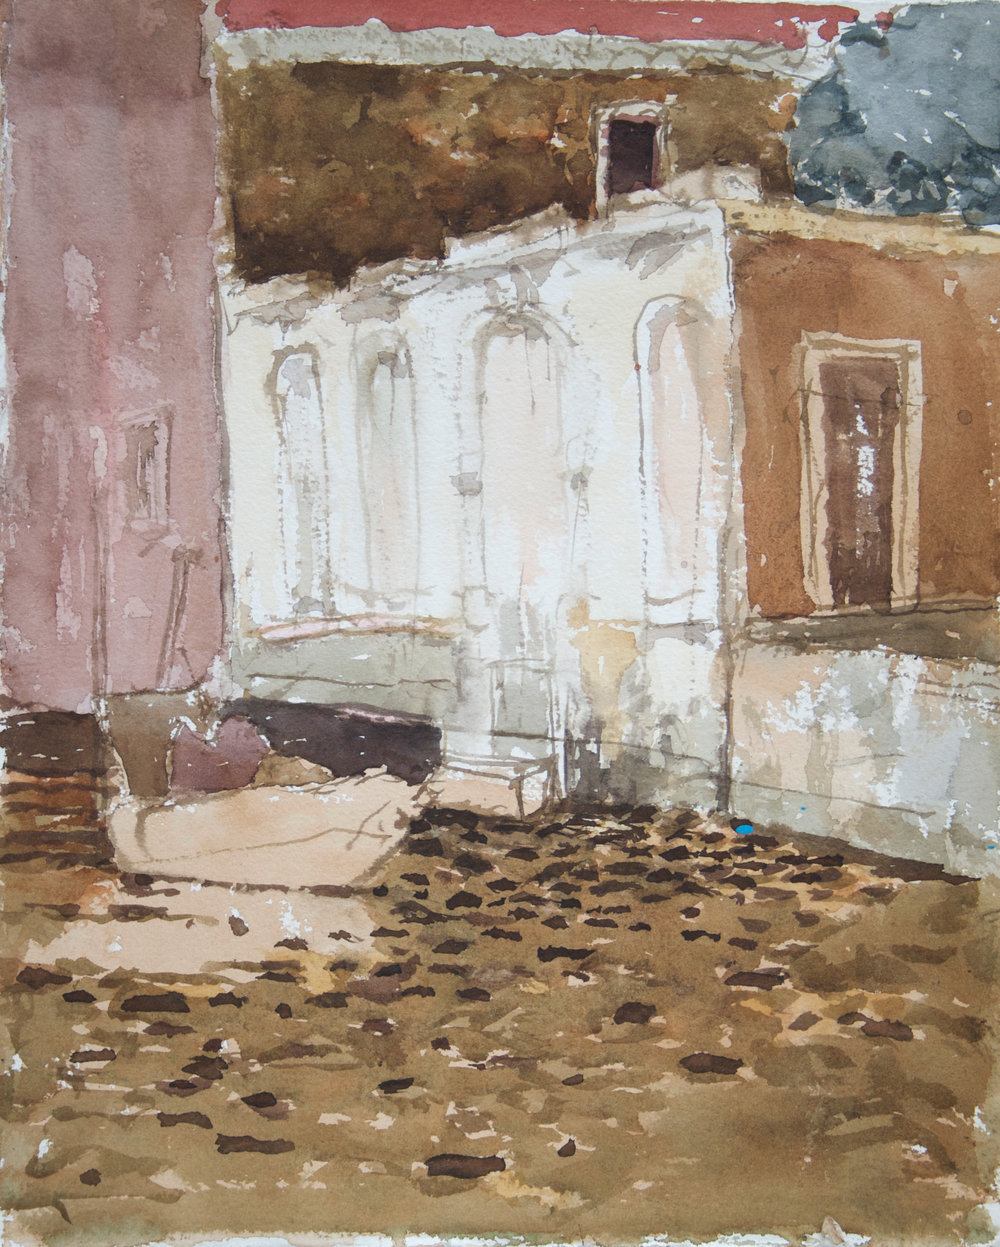 2001_Rio_della_Sensa_Watercolour_on_paper_15x12in_WPF343.jpg